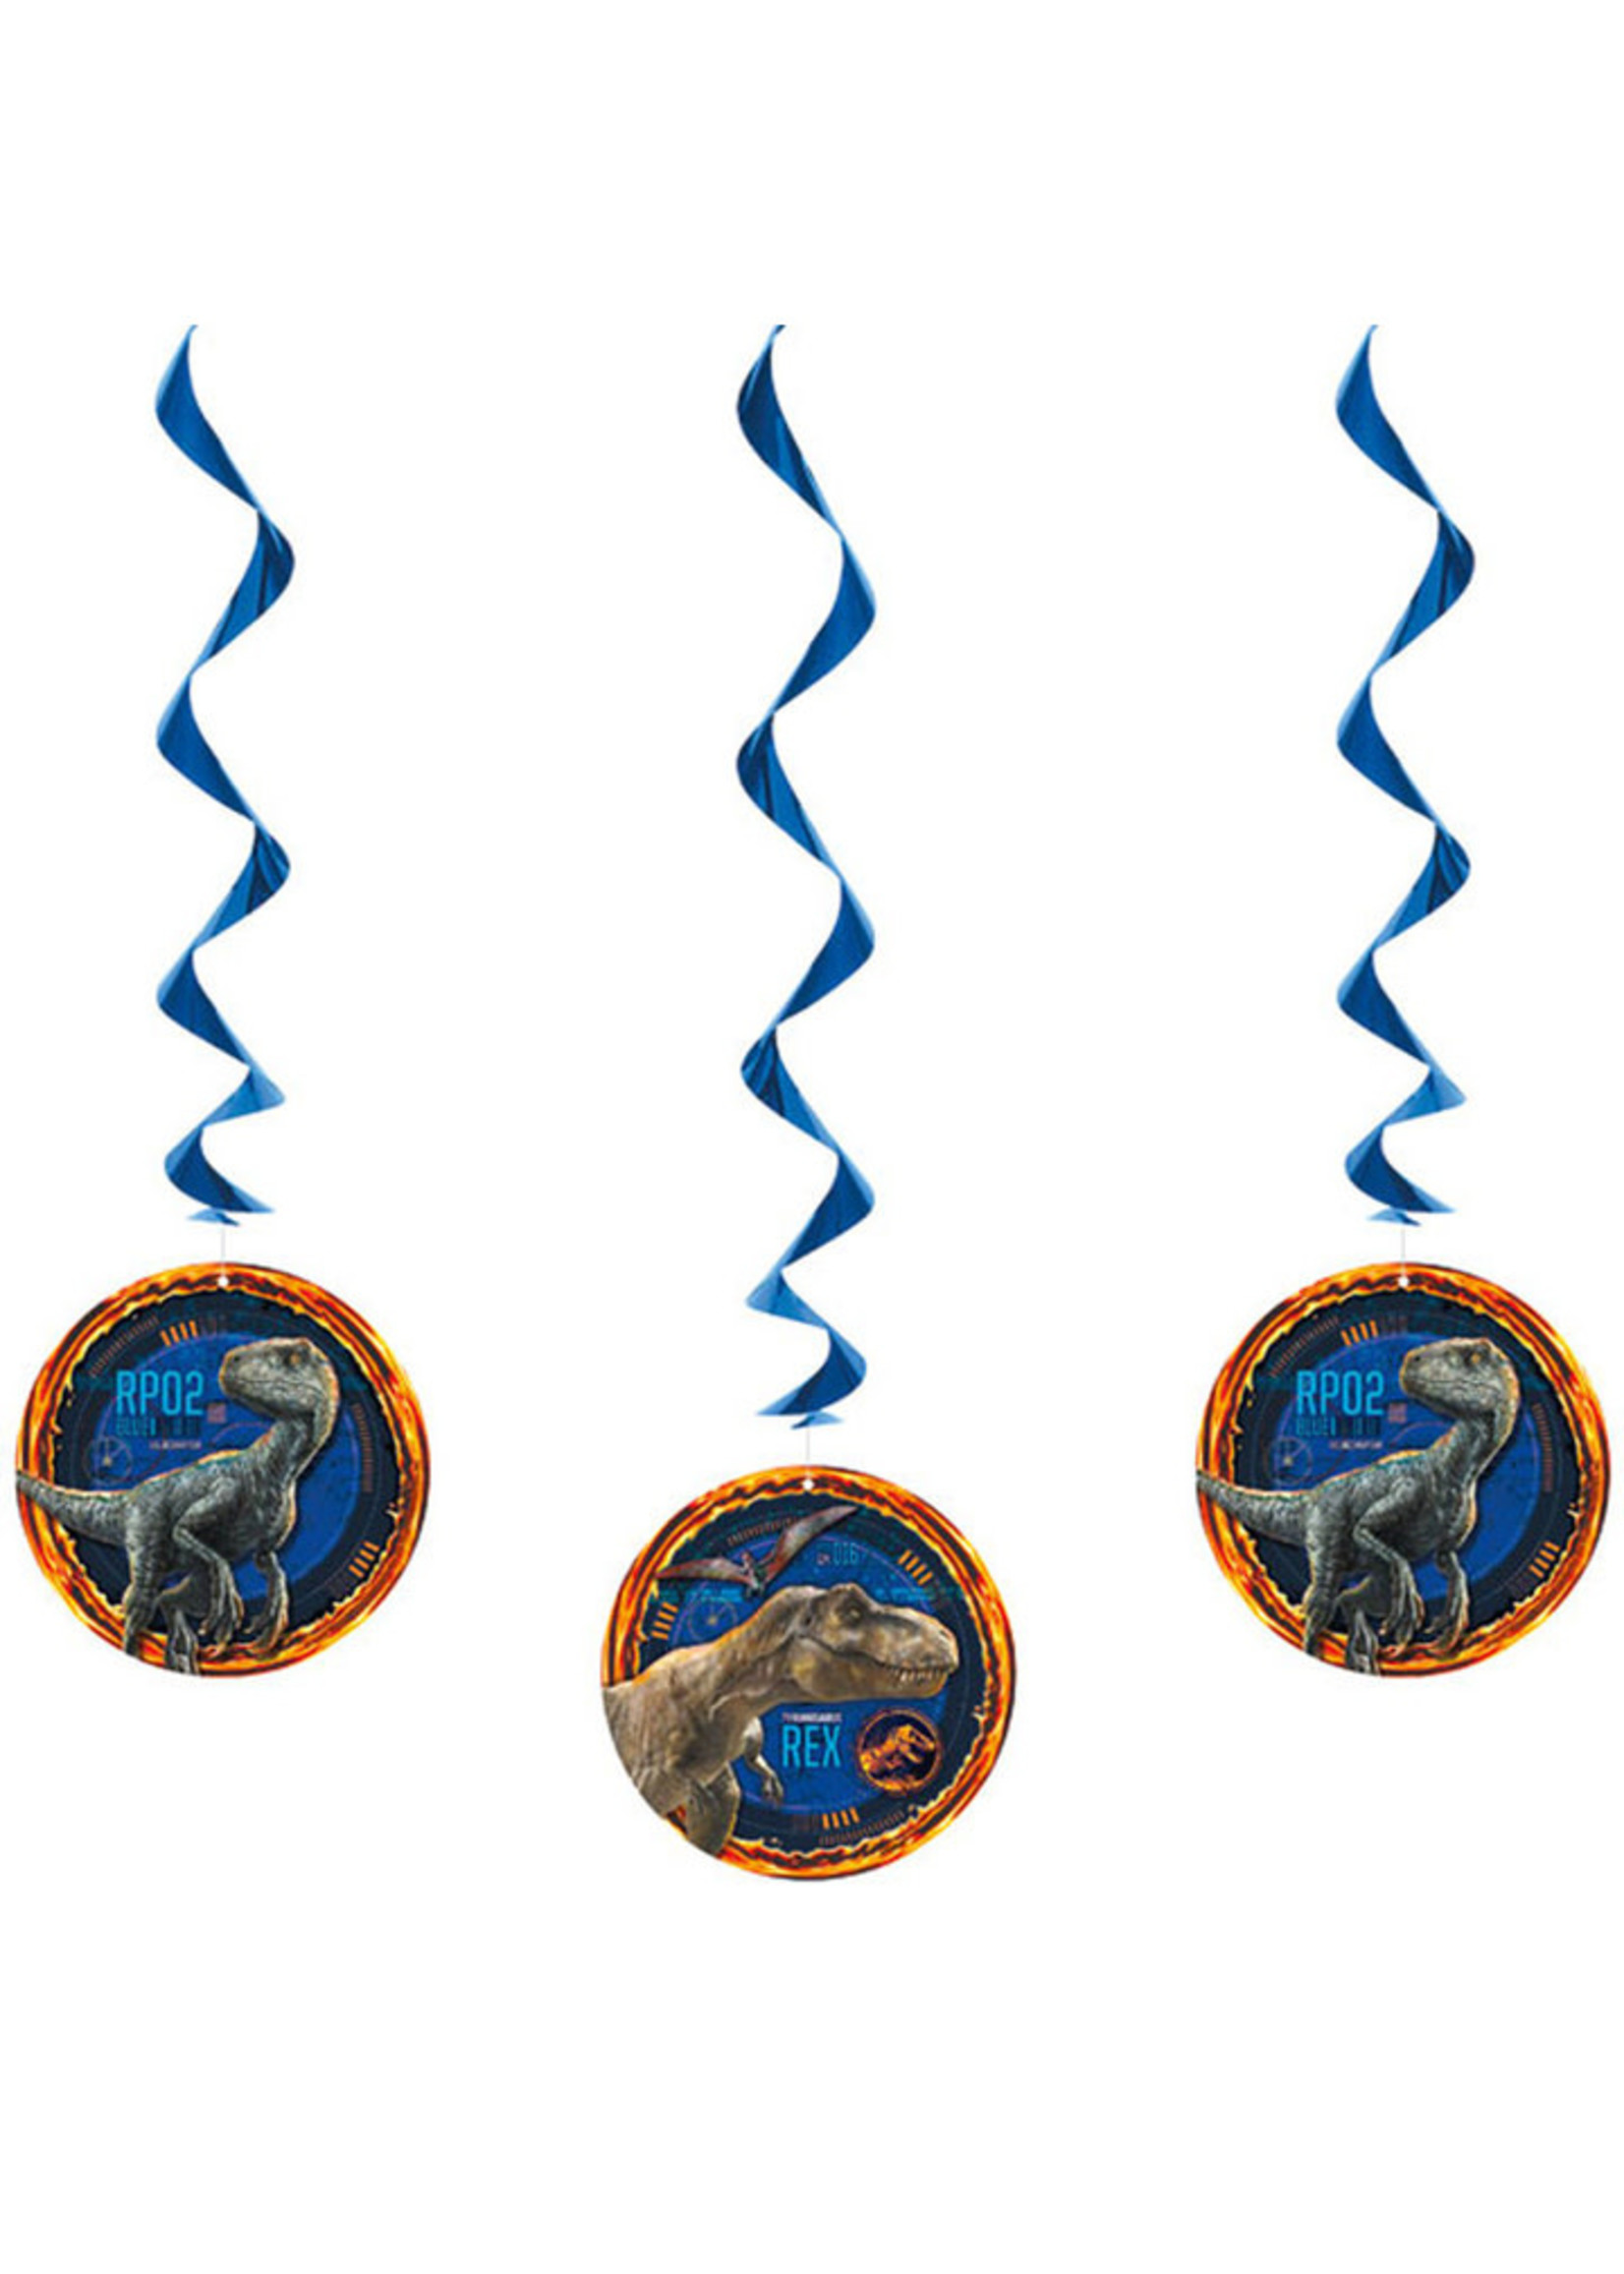 UNIQUE INDUSTRIES INC Jurassic World: Fallen Kingdom Hanging Decorations - 3ct